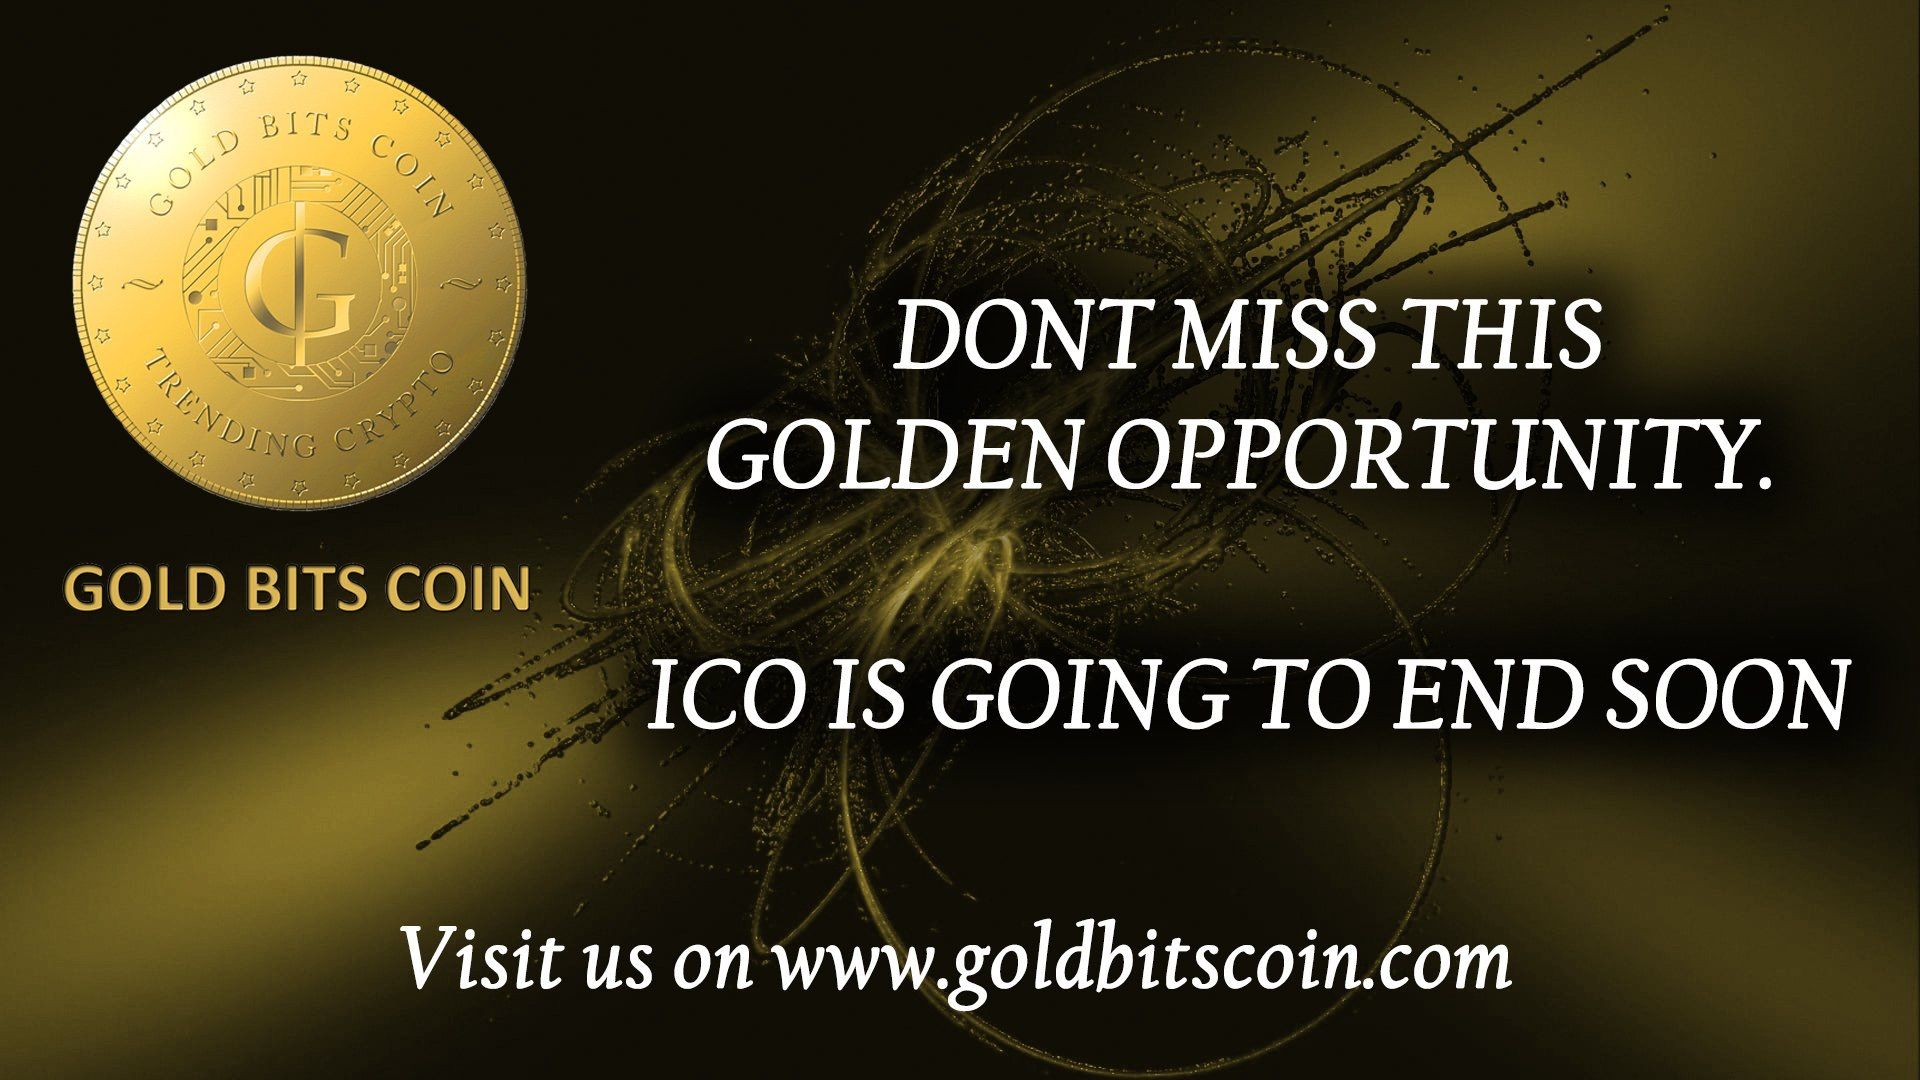 GoldBitsCoin (GBC) ICO is ending very soon! Purchase